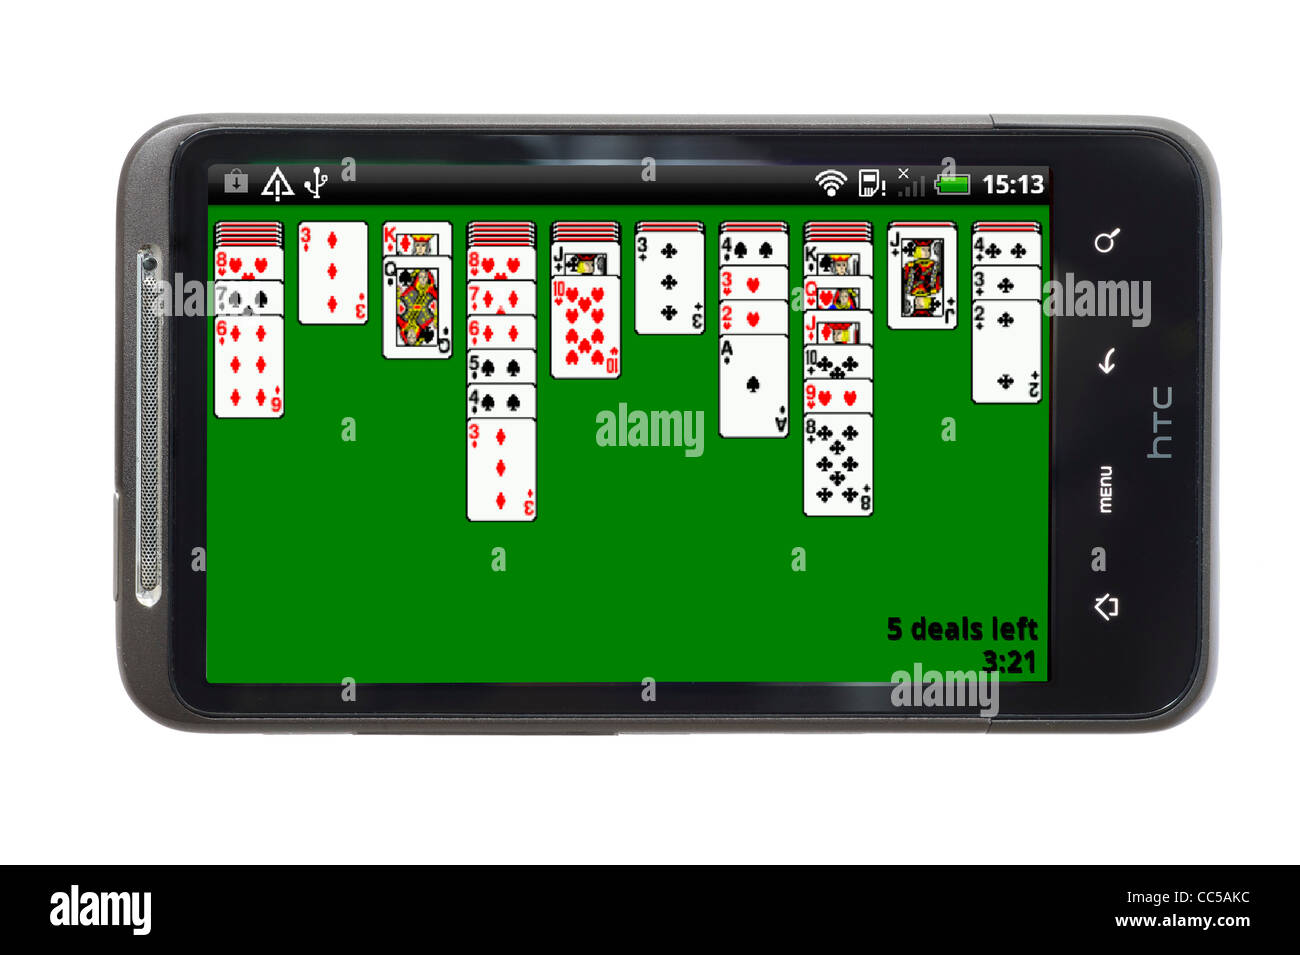 Playing Spider Solitaire on an HTC smartphone - Stock Image